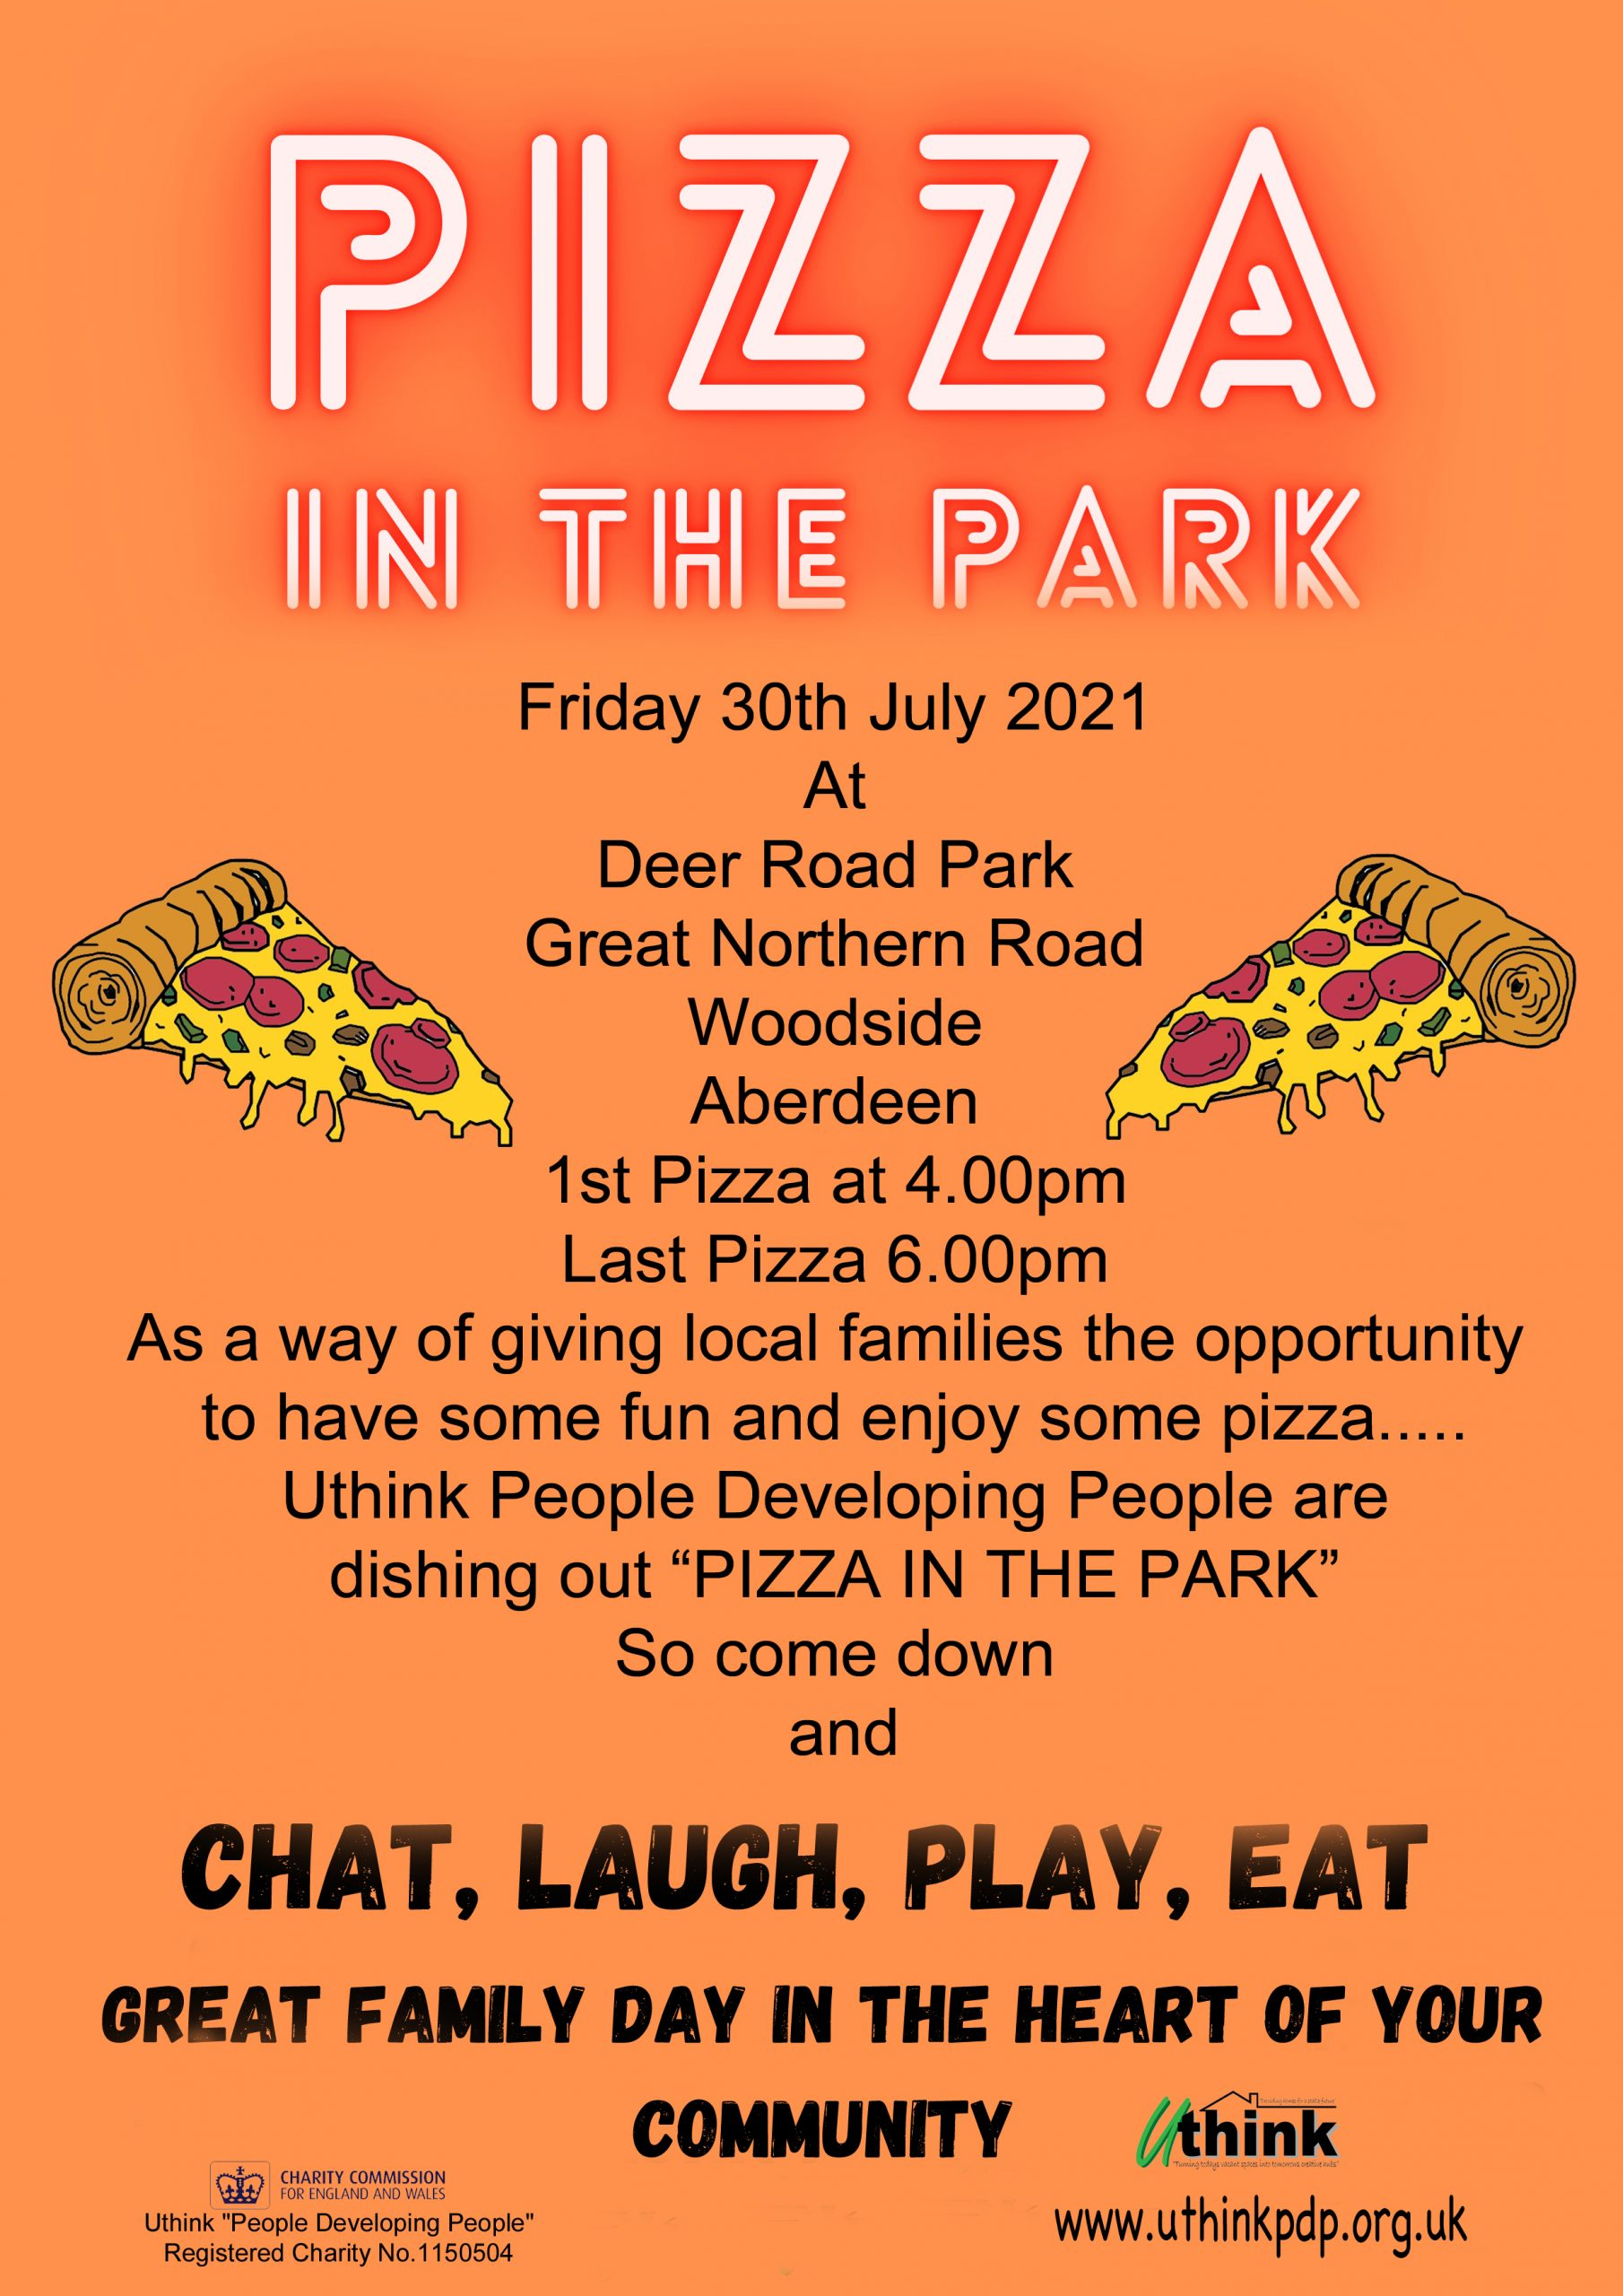 Aberdeen Pizza in the Park